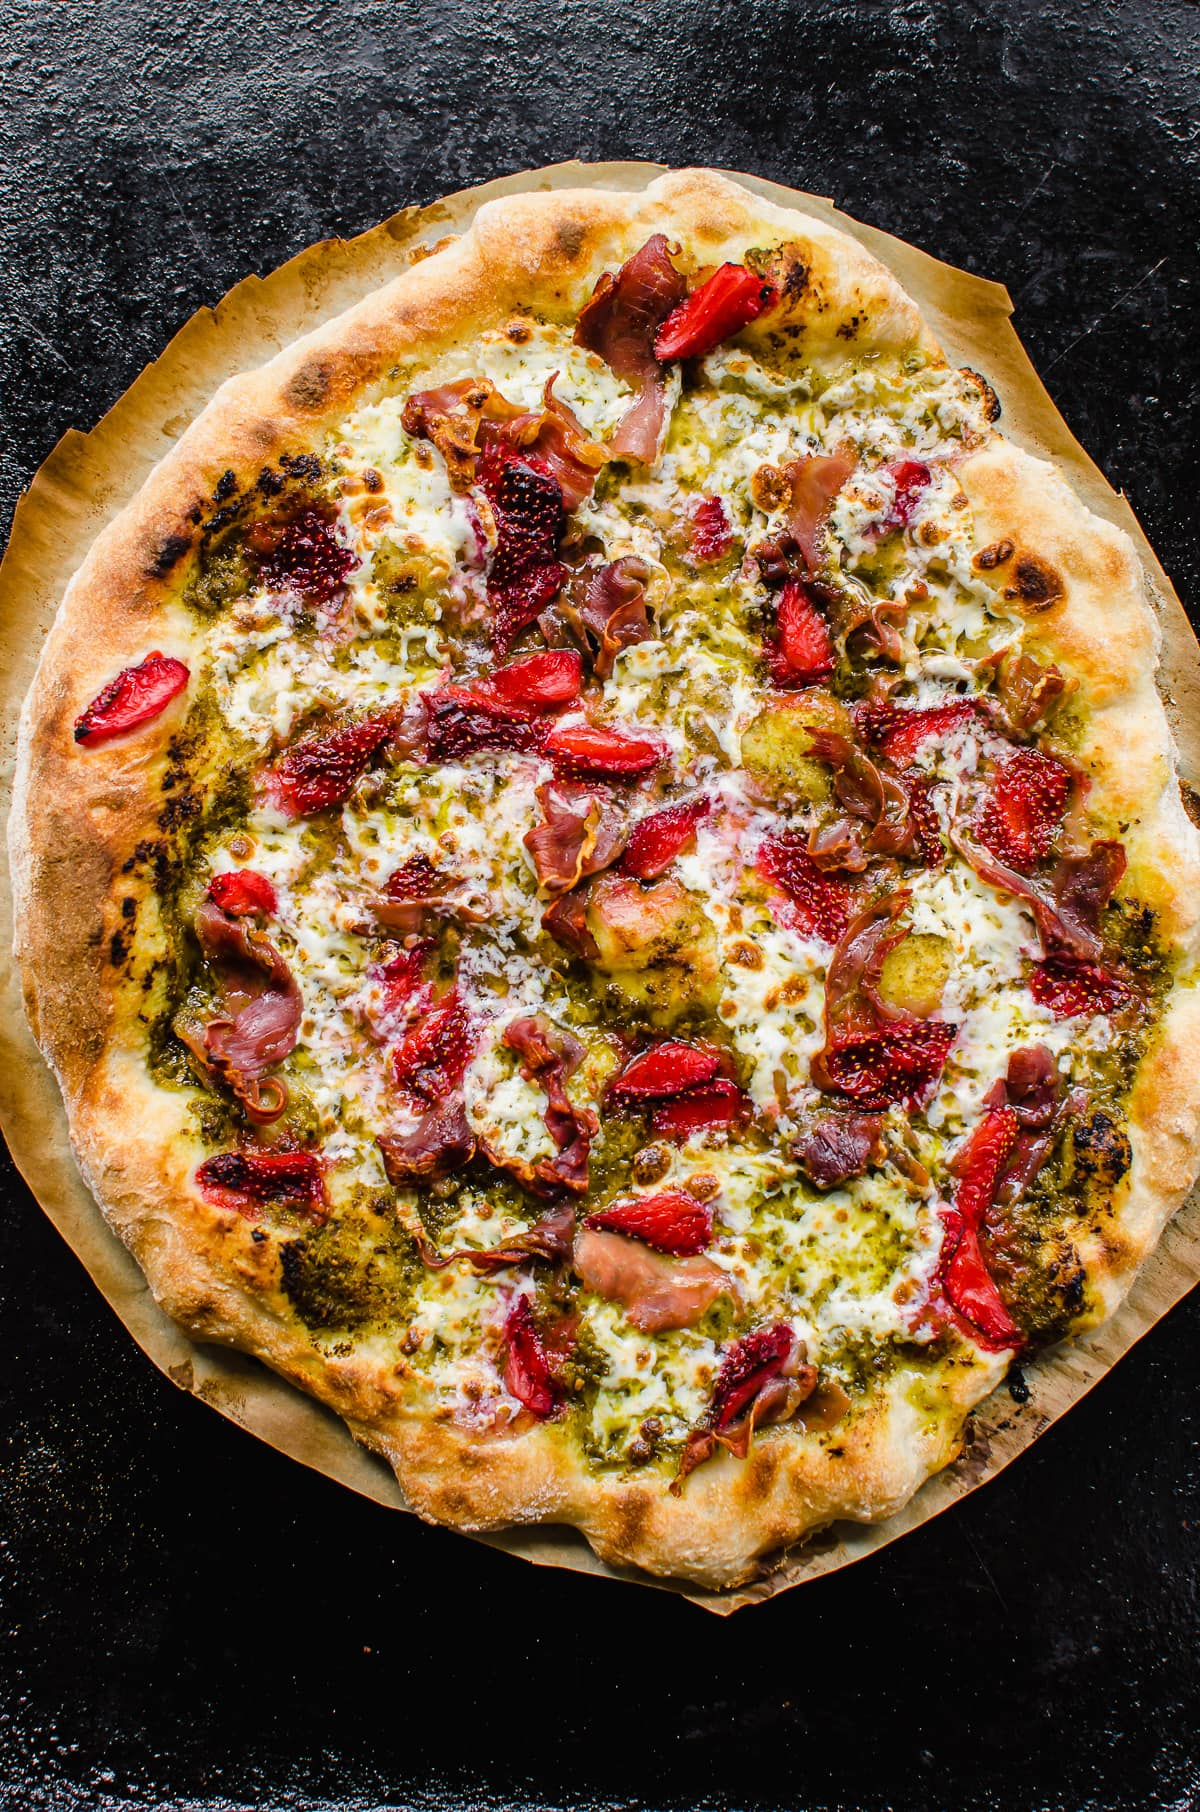 A baked prosciutto pizza with strawberries and pesto.